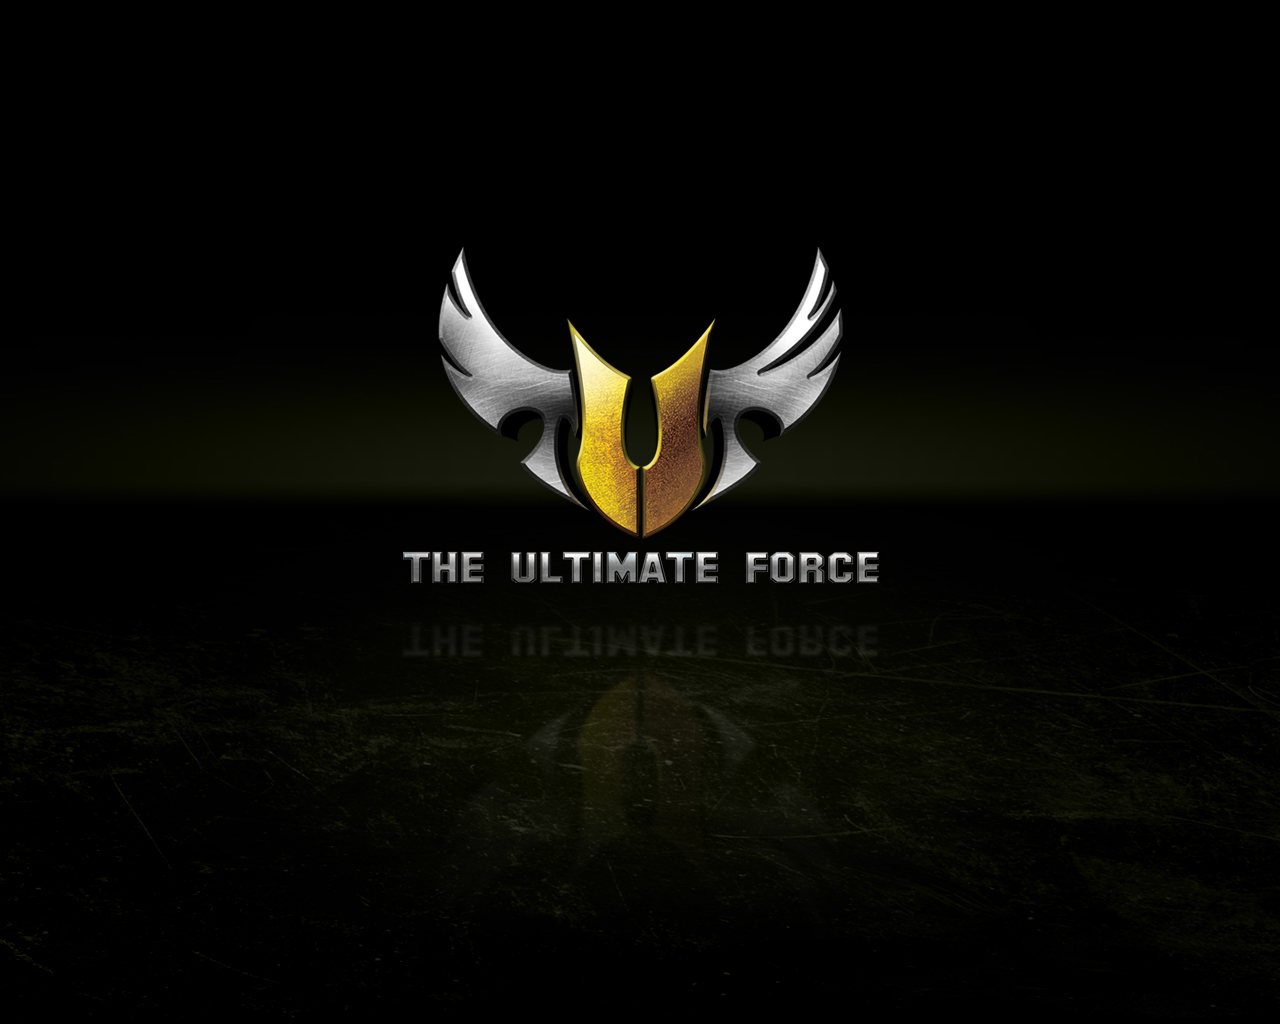 Hd Gamer Wallpaper Wallpaper Downloads The Ultimate Force